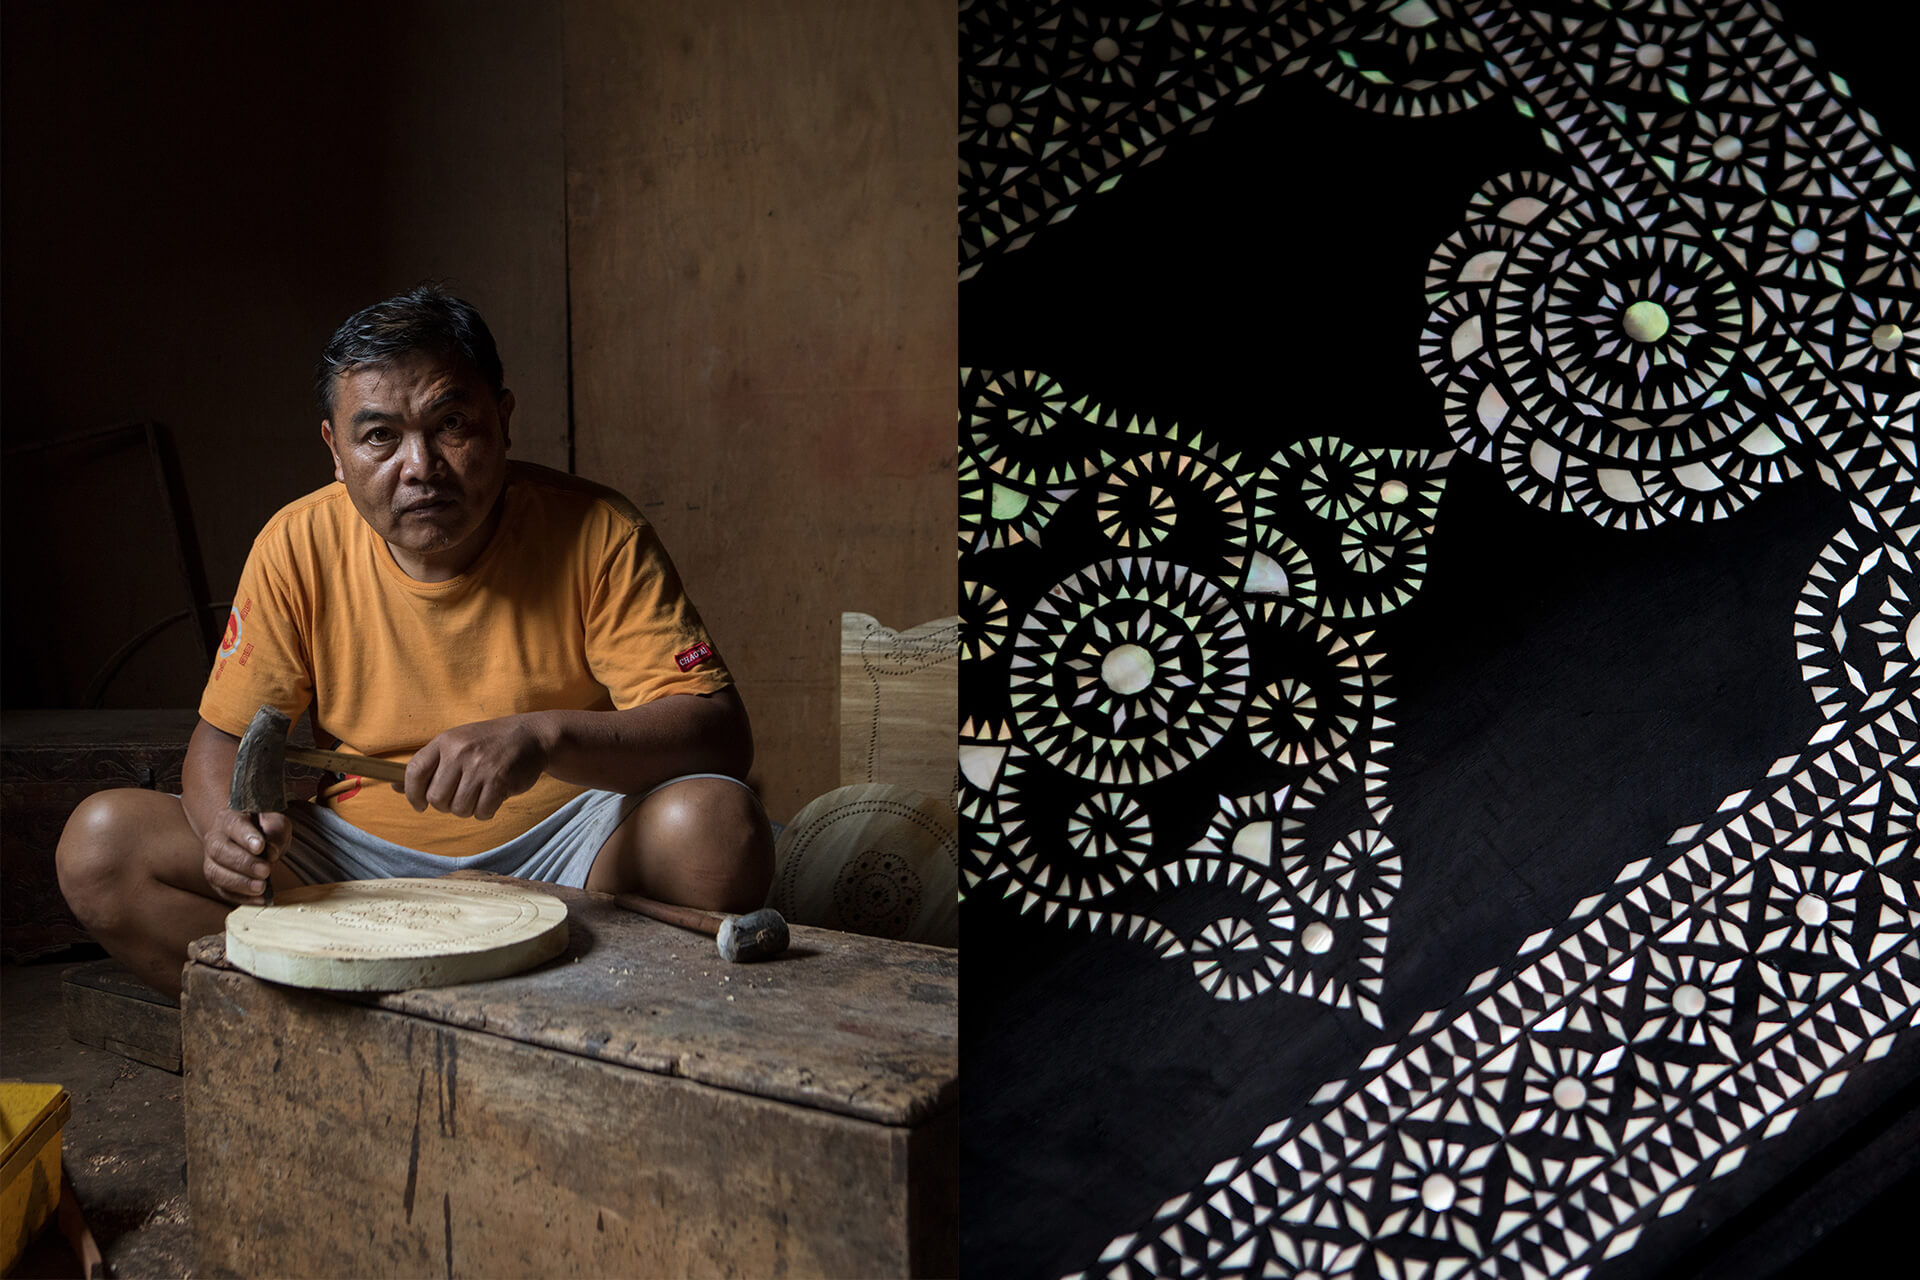 Amid the Marawi conflict, Chiara de Castro meets with the artisans and culture bearers of Lanao del Sur, seeking to understand how cultural identity endures war and displacement.